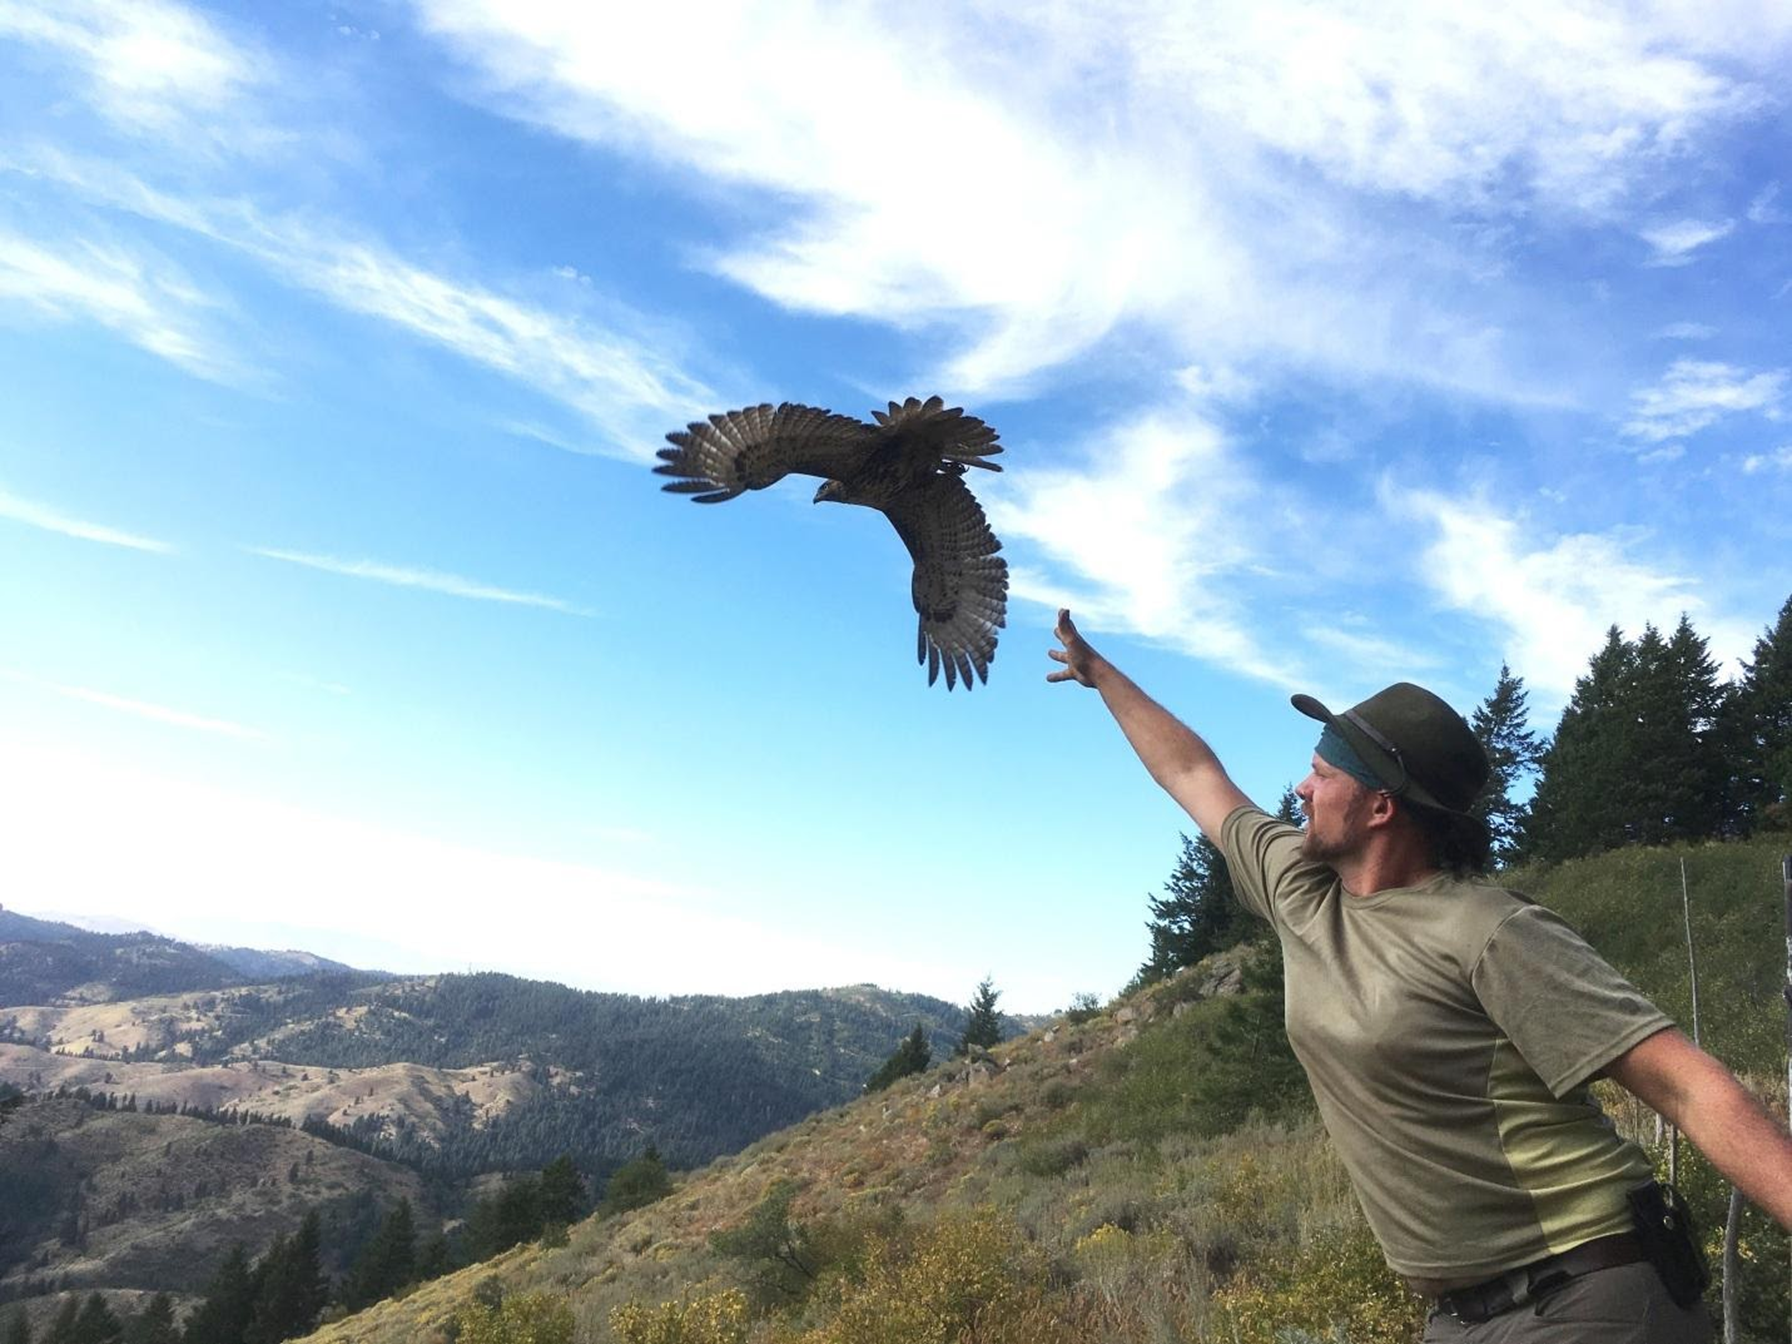 a young biologist stands with his arm outstretched and hand open. a red tailed hawk with wings spread flies away with an expansive blue sky and the Boise mountains in the background